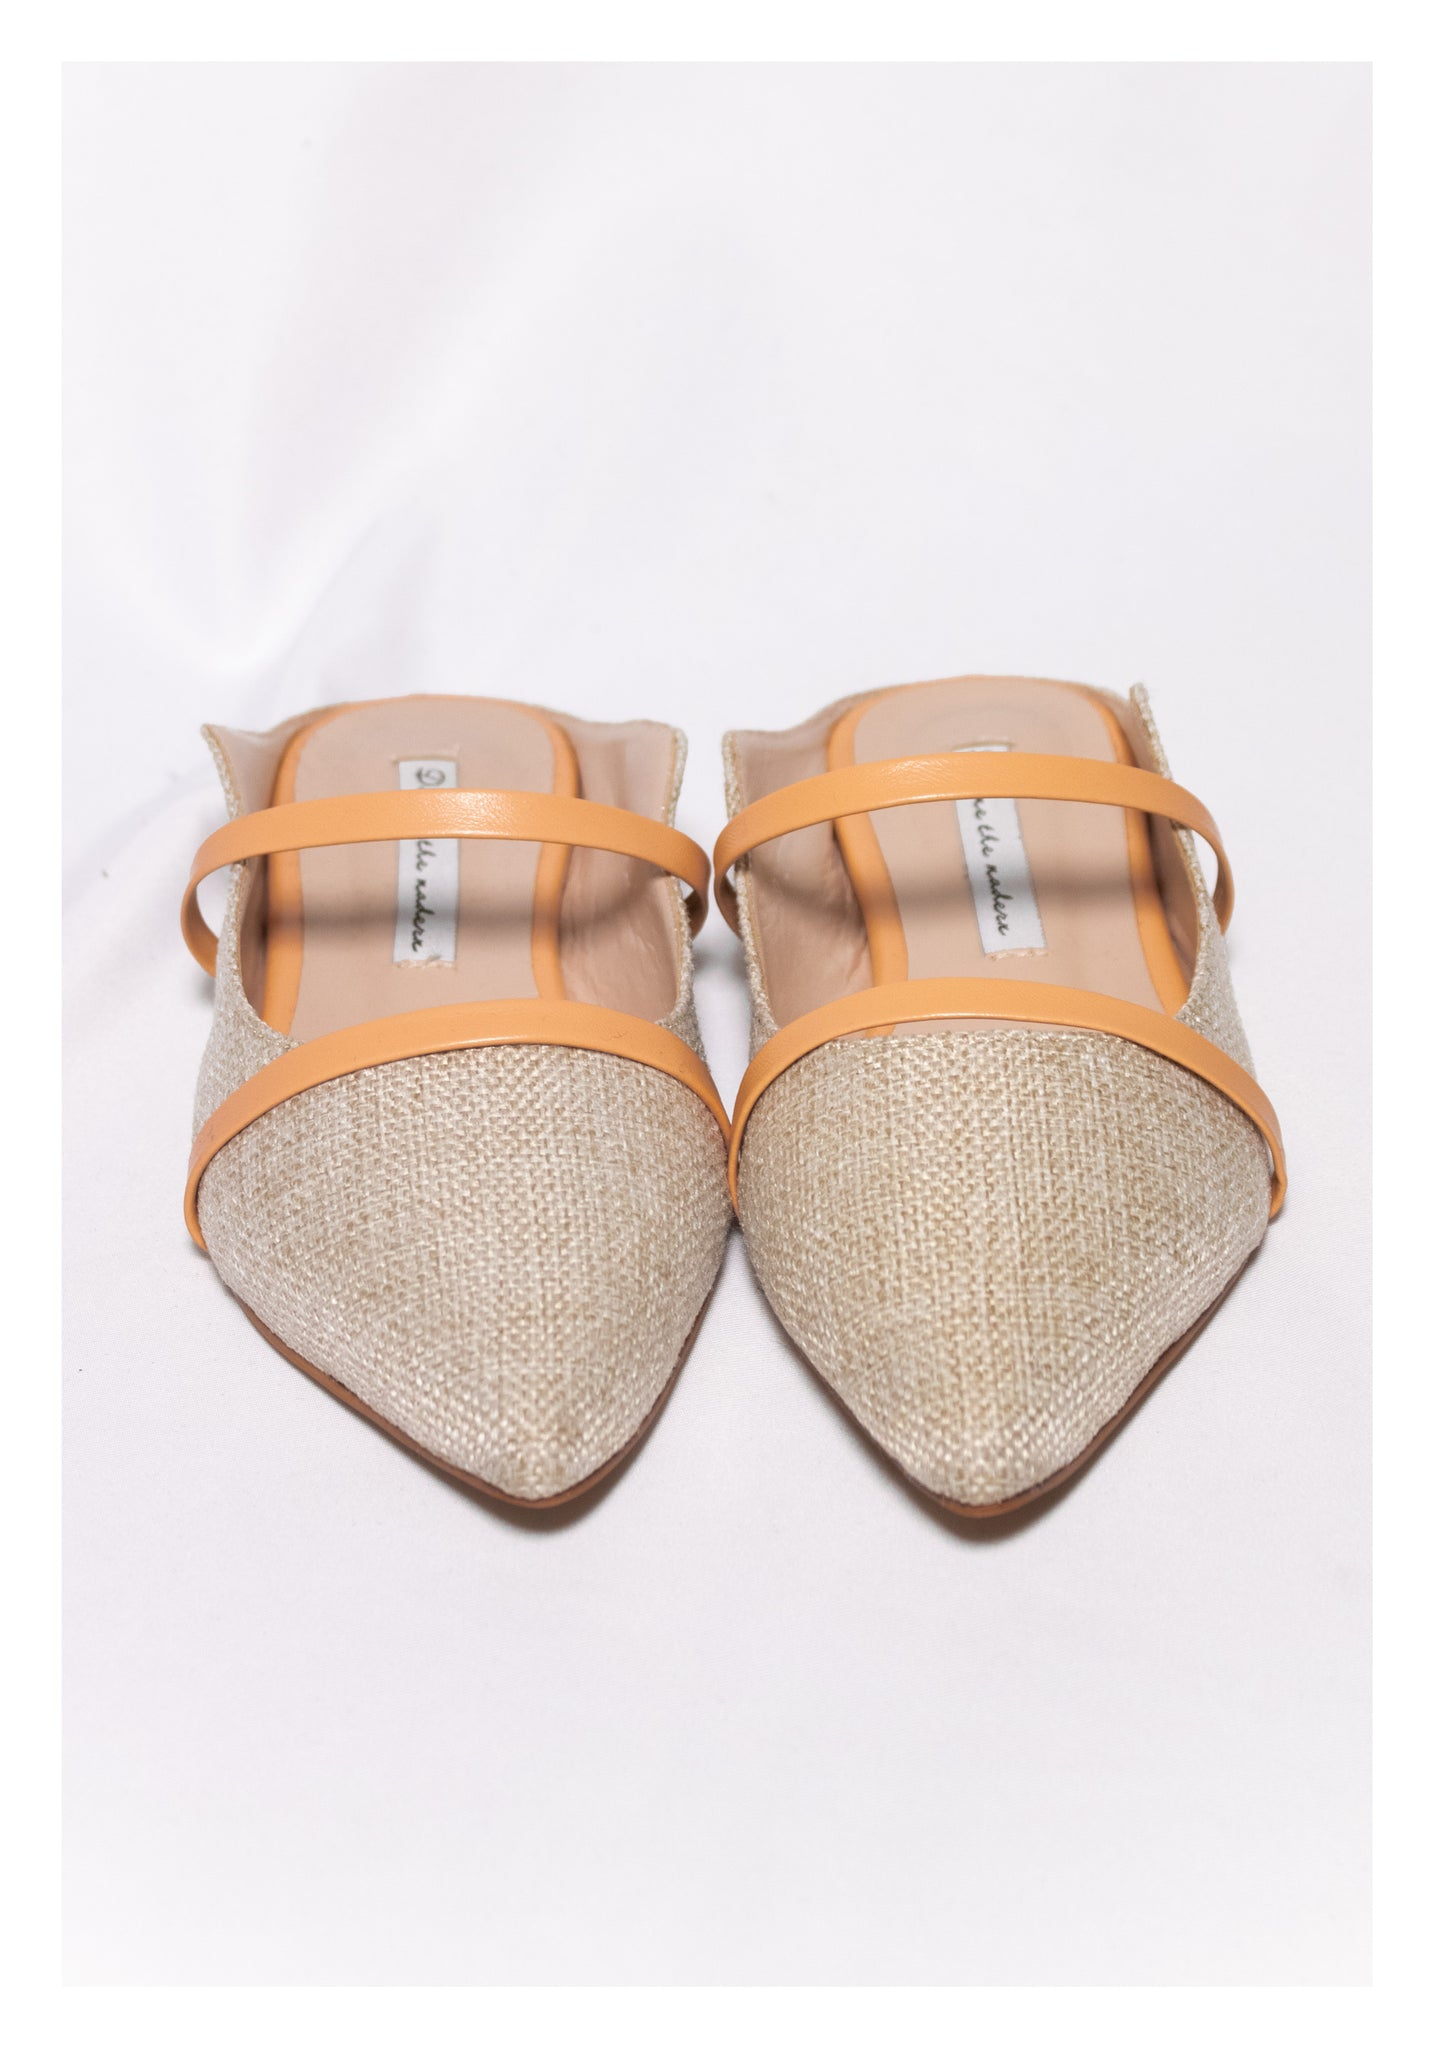 Sample Shoes - Double Strap Mules - whoami